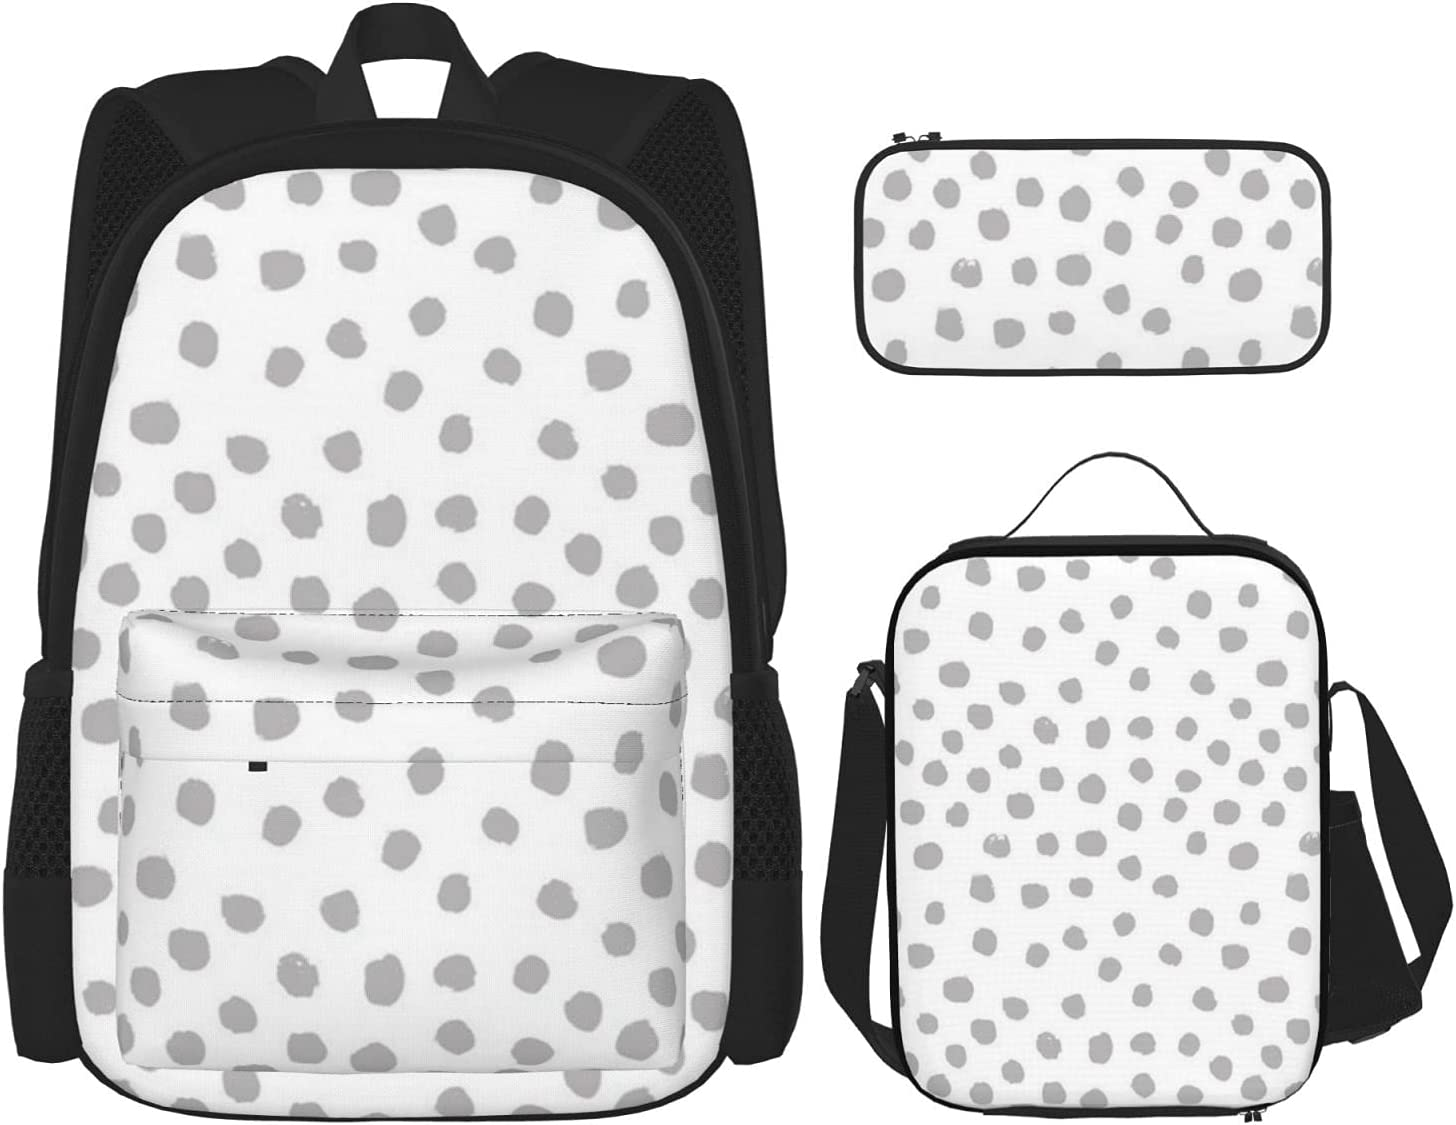 In a popularity Dots Grey Minimal Black White Lunch Box Manufacturer regenerated product Insulated Backpack with